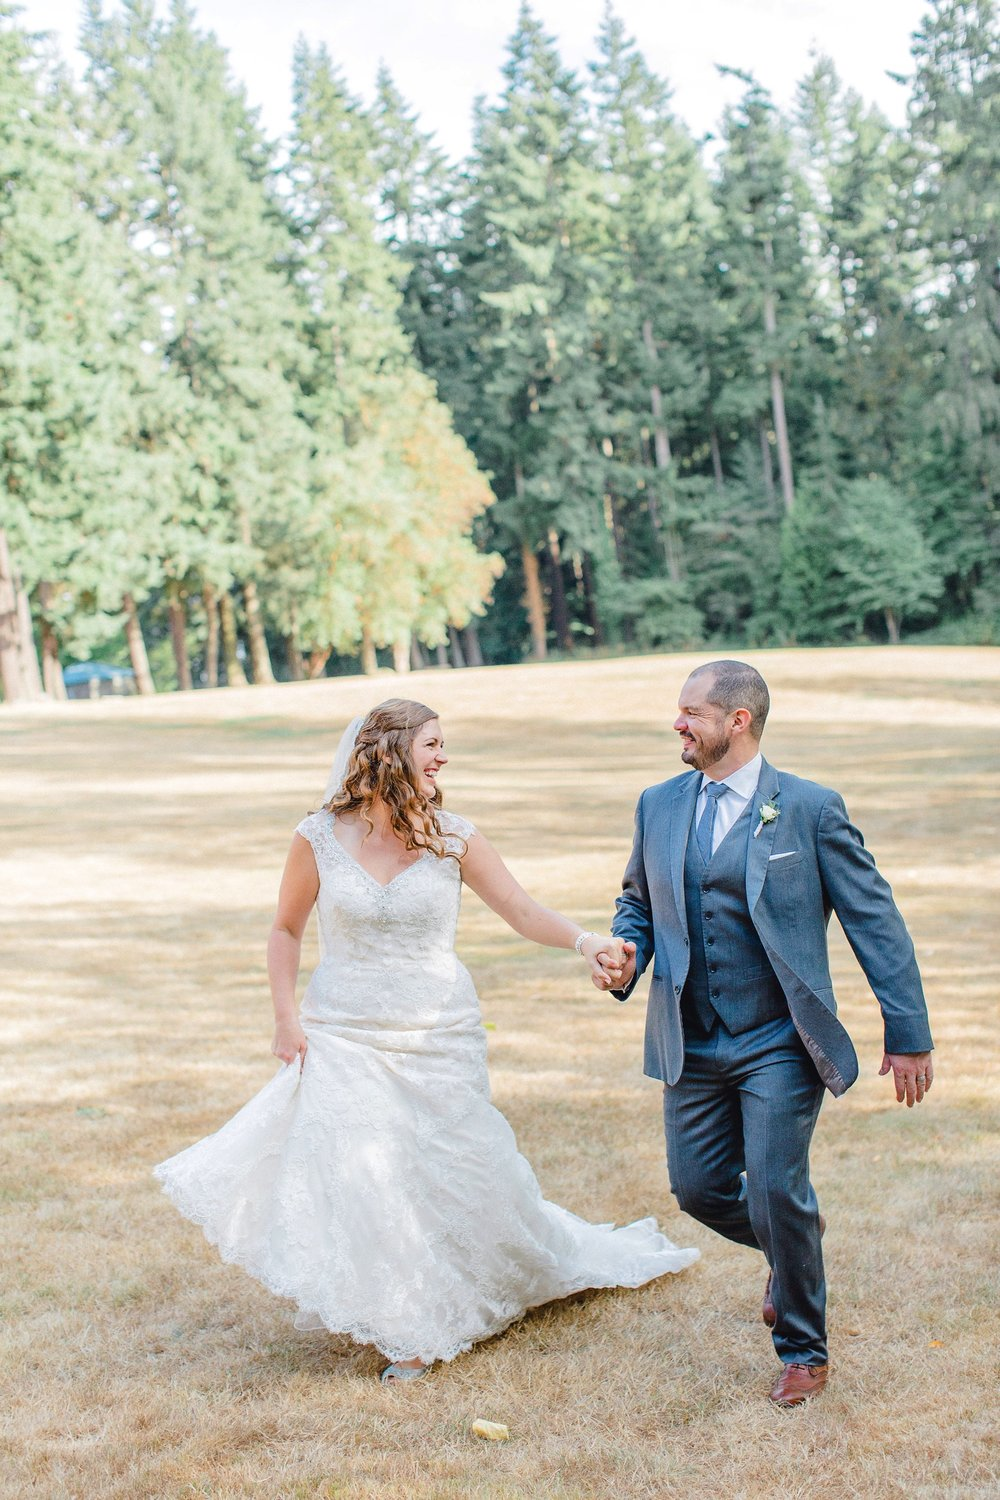 0000000000076_emmarosecompany_katiematt-9915_Photographer_PNW_House_Robinswood_Emma_Light_Company_Airy_Rose_and_Wedding_Seattle.jpg